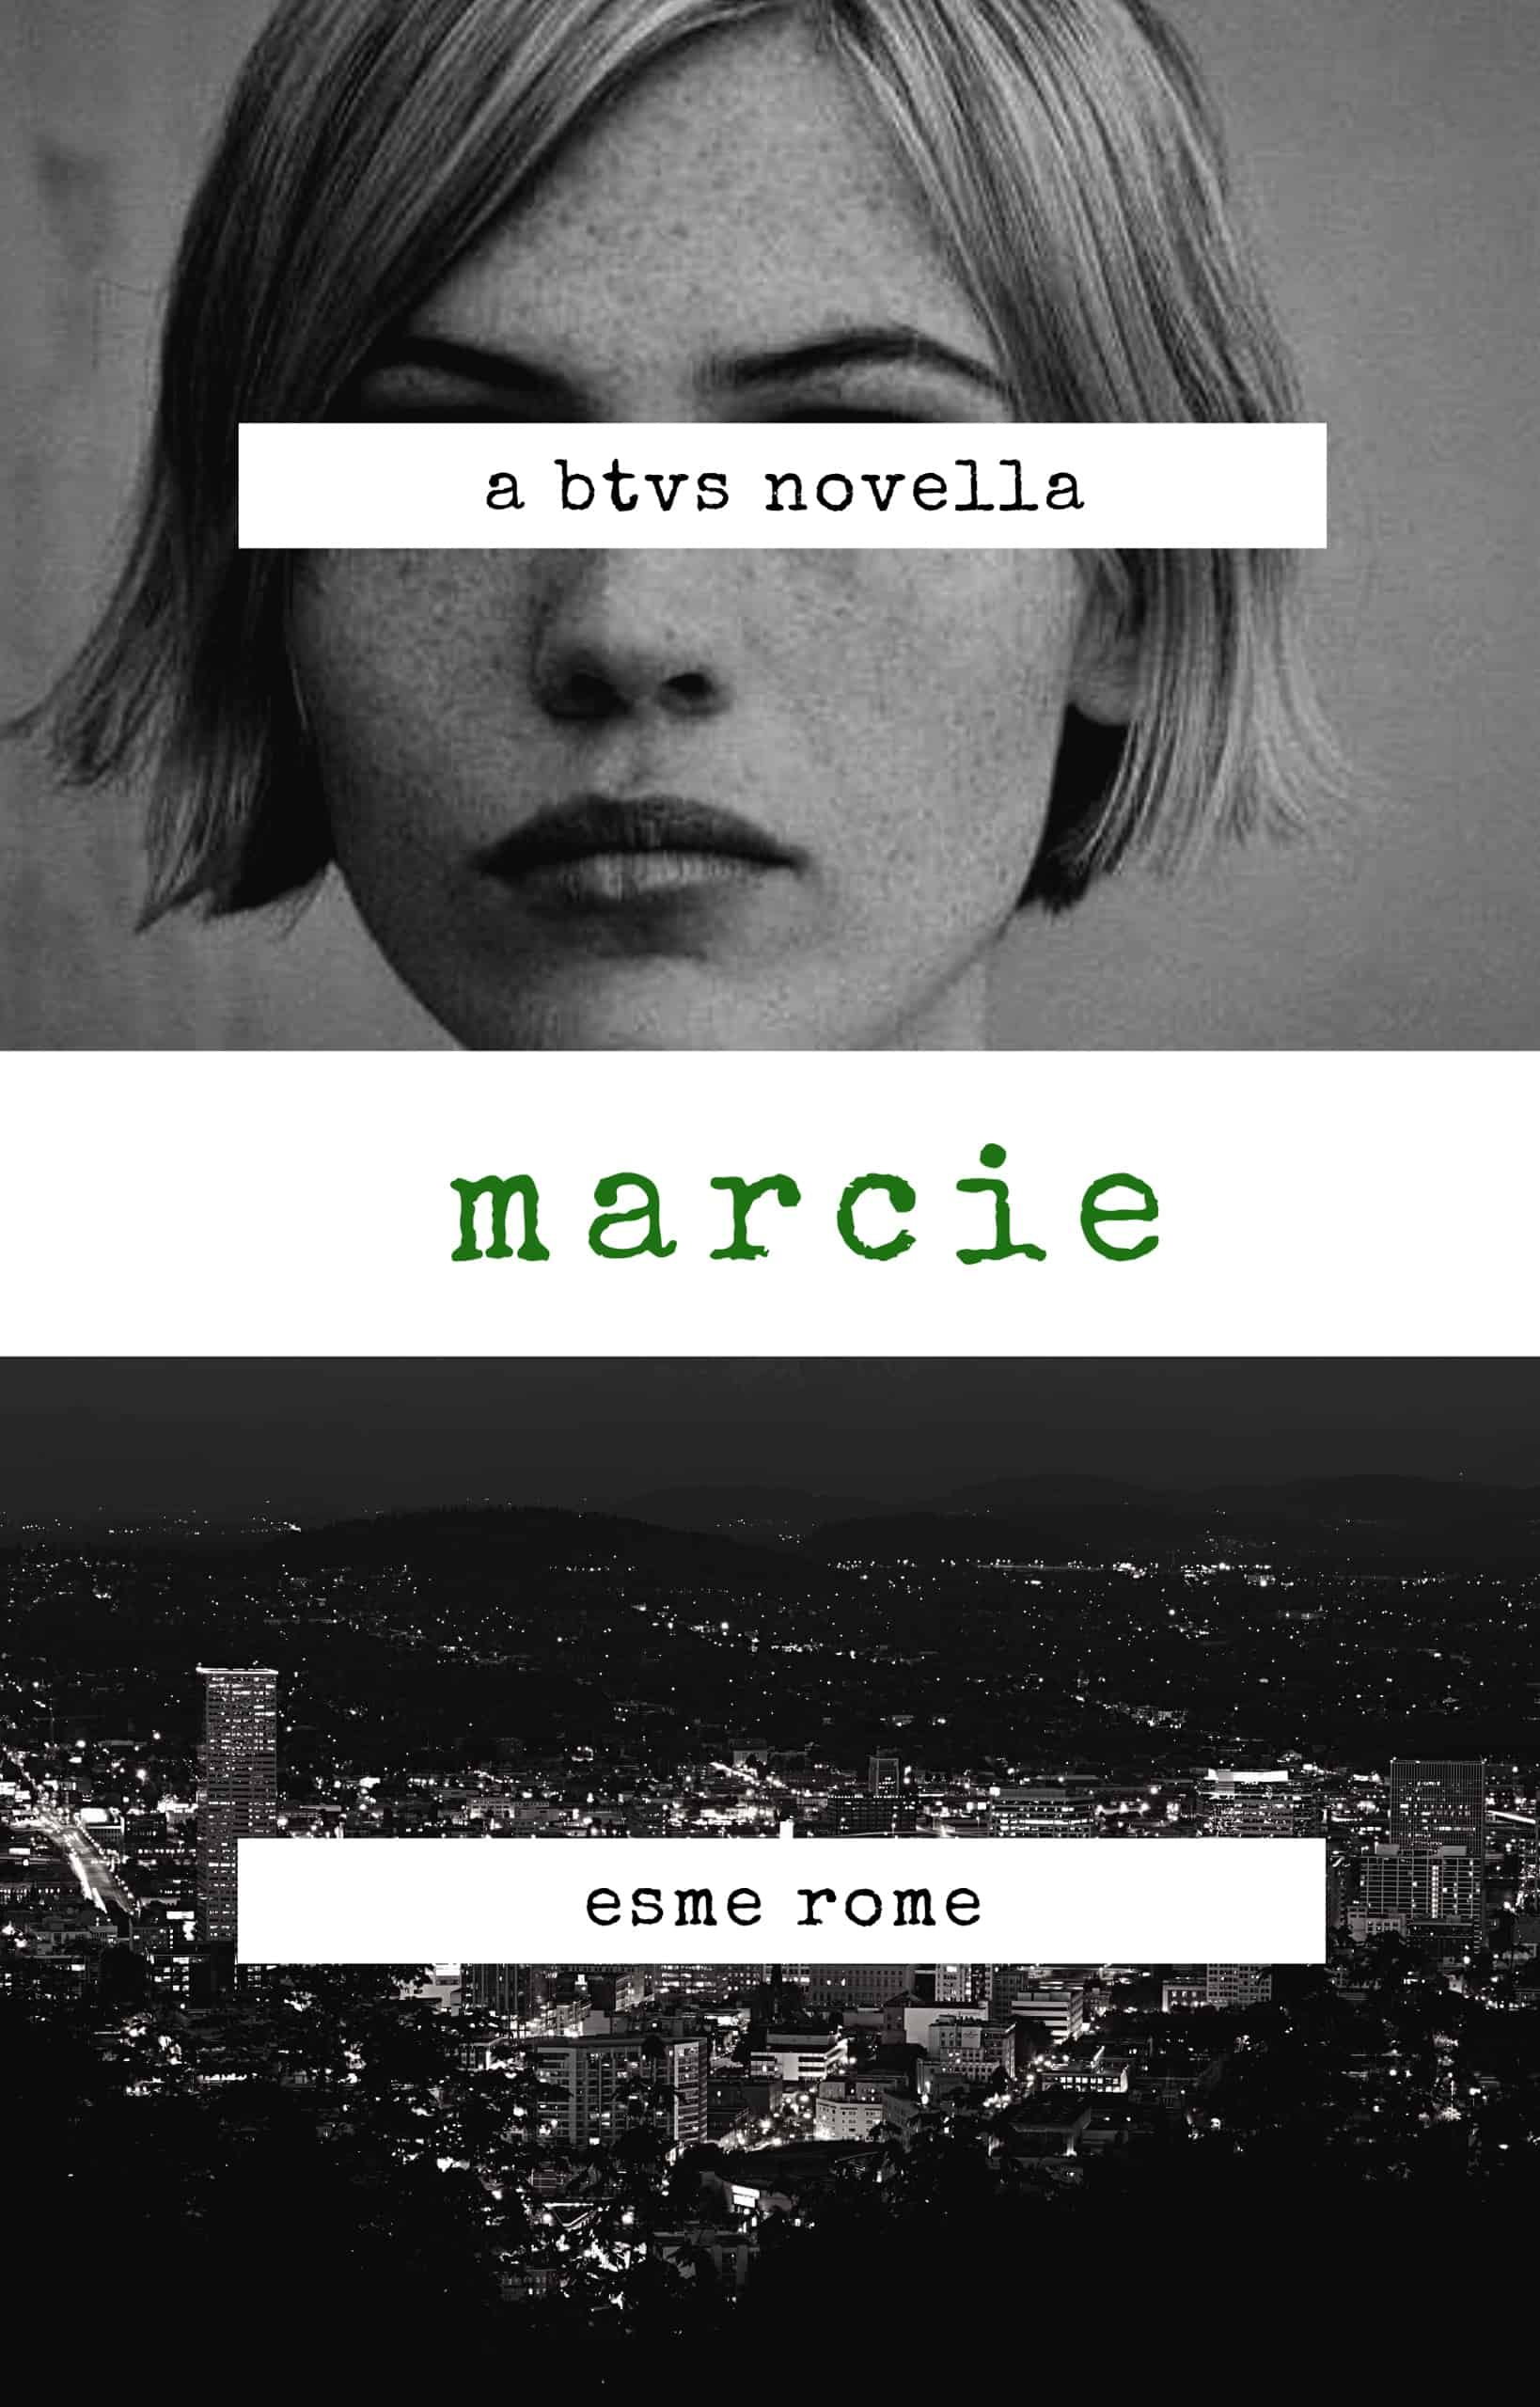 The cover for Marcie by Esme Rome, showing Clea DuVall and a city at night.